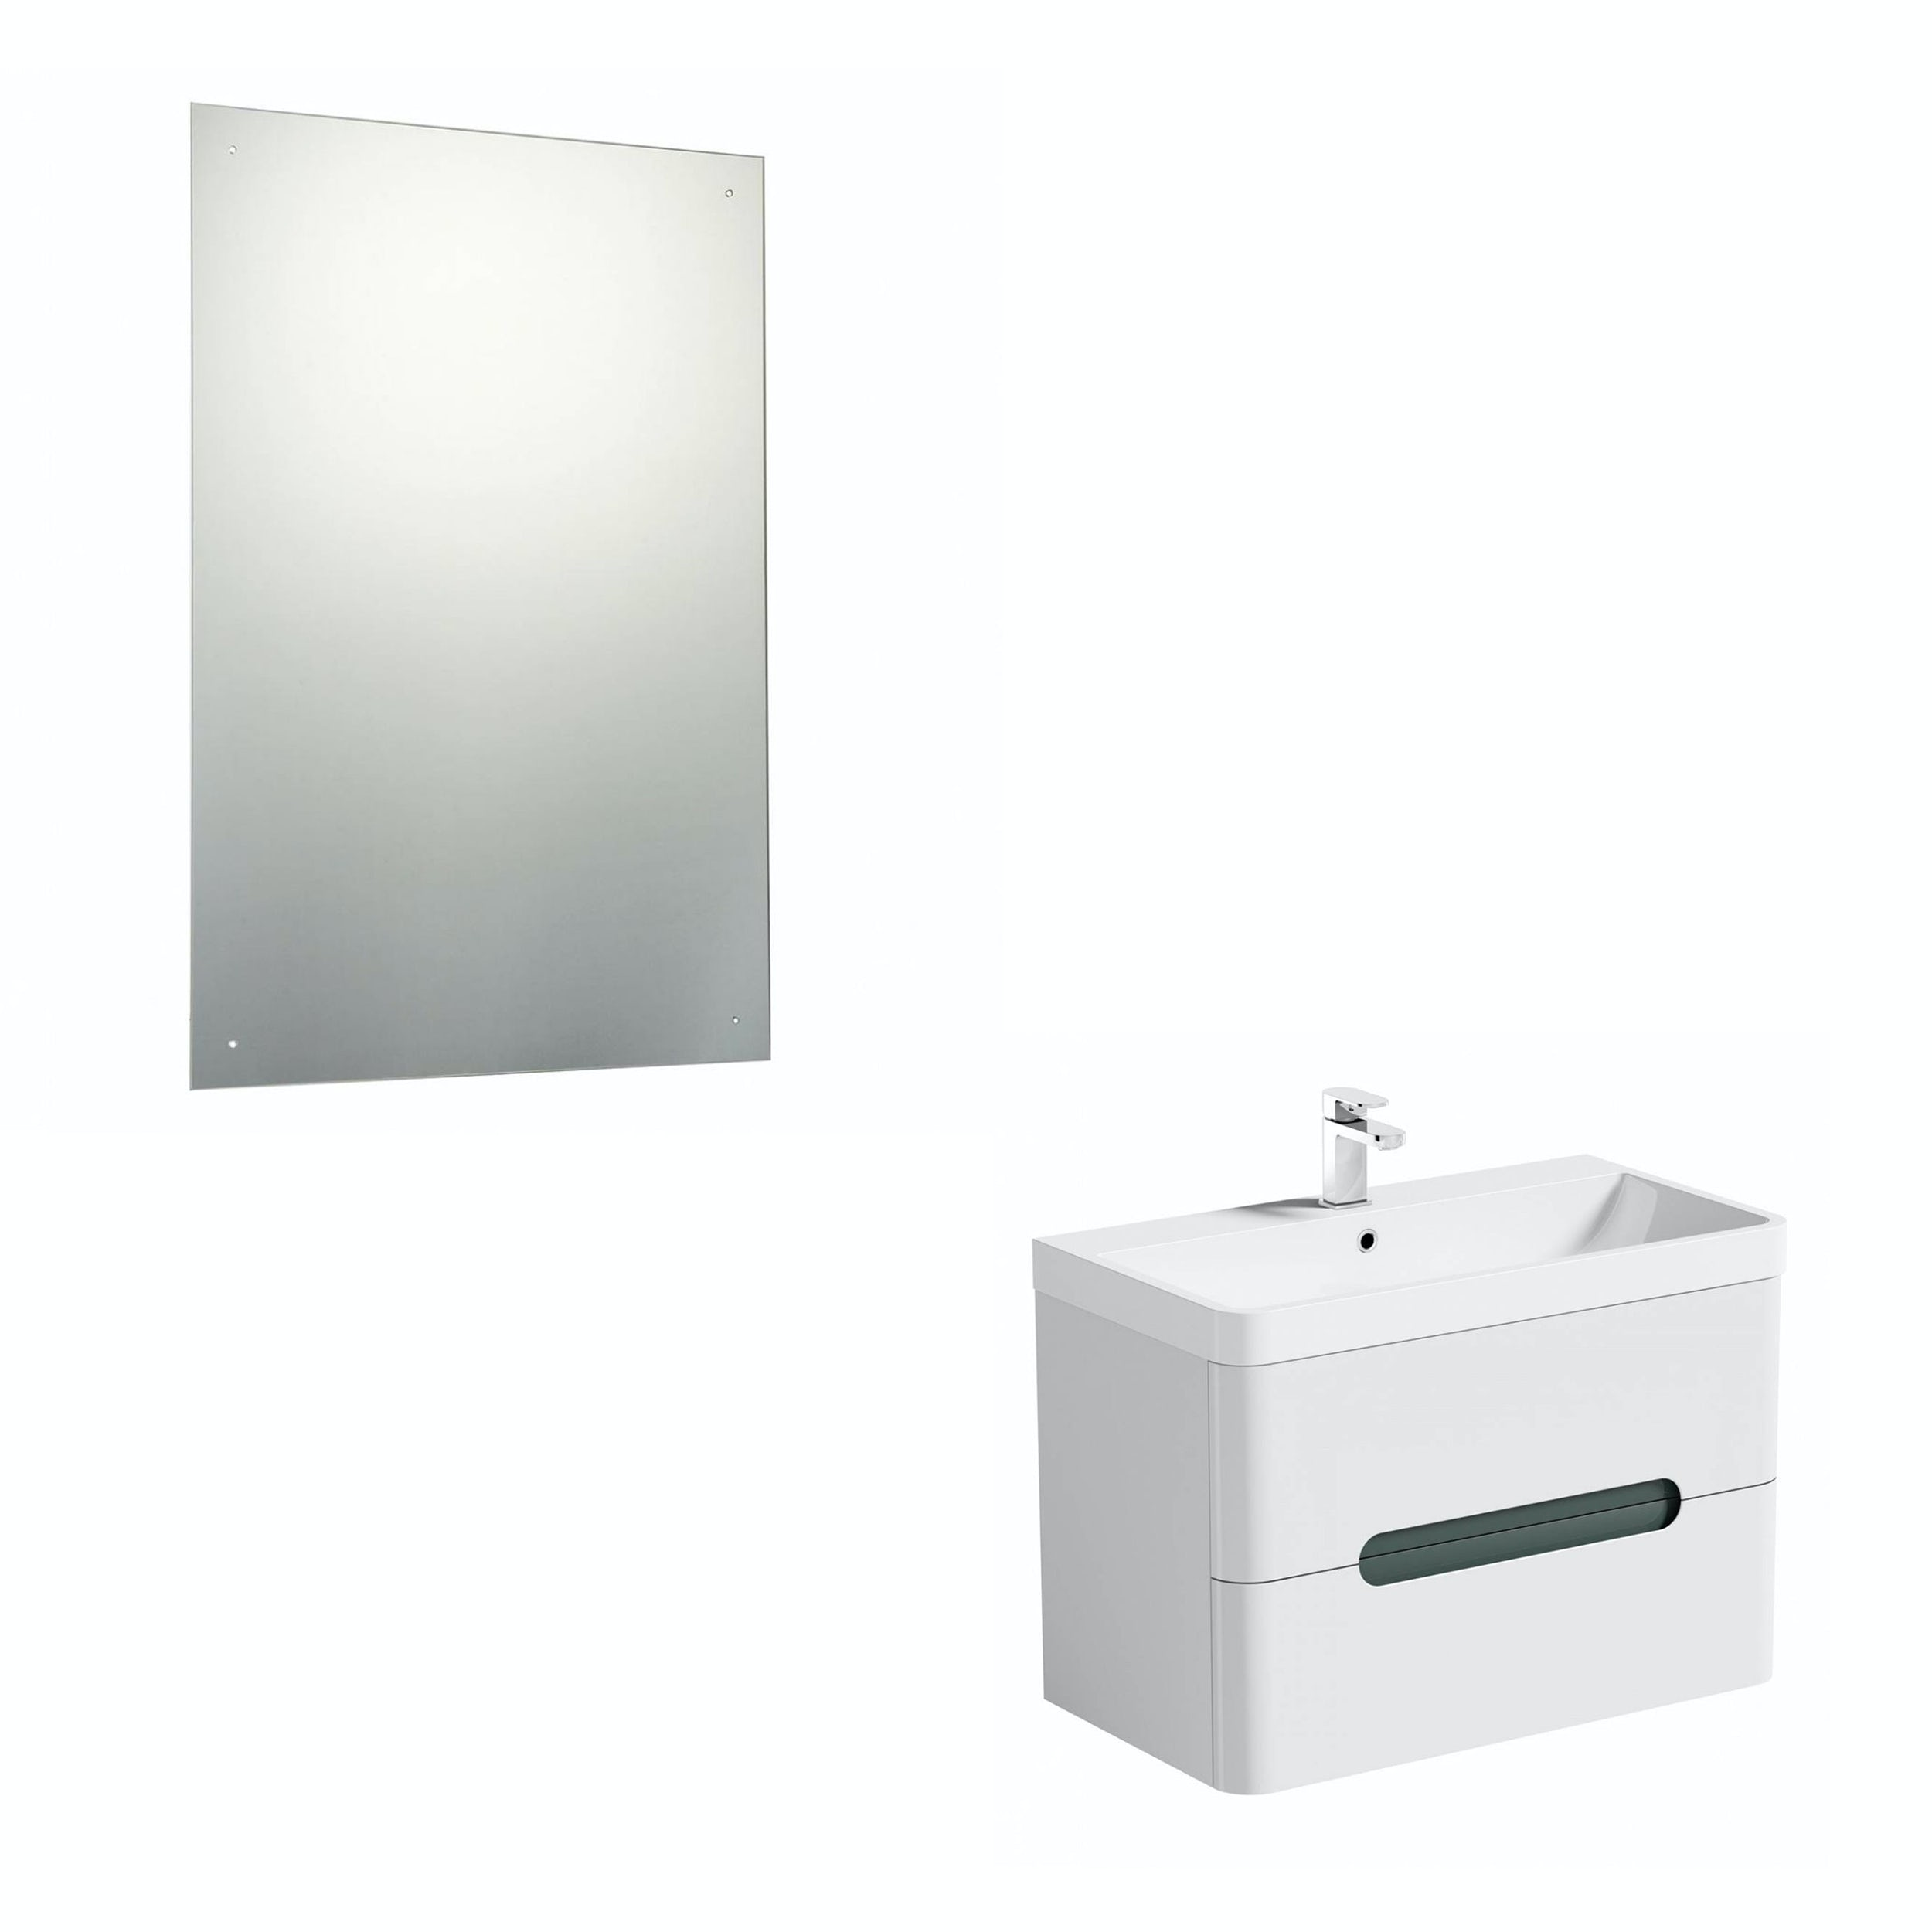 Mode Ellis slate wall hung vanity unit 800mm and mirror offer